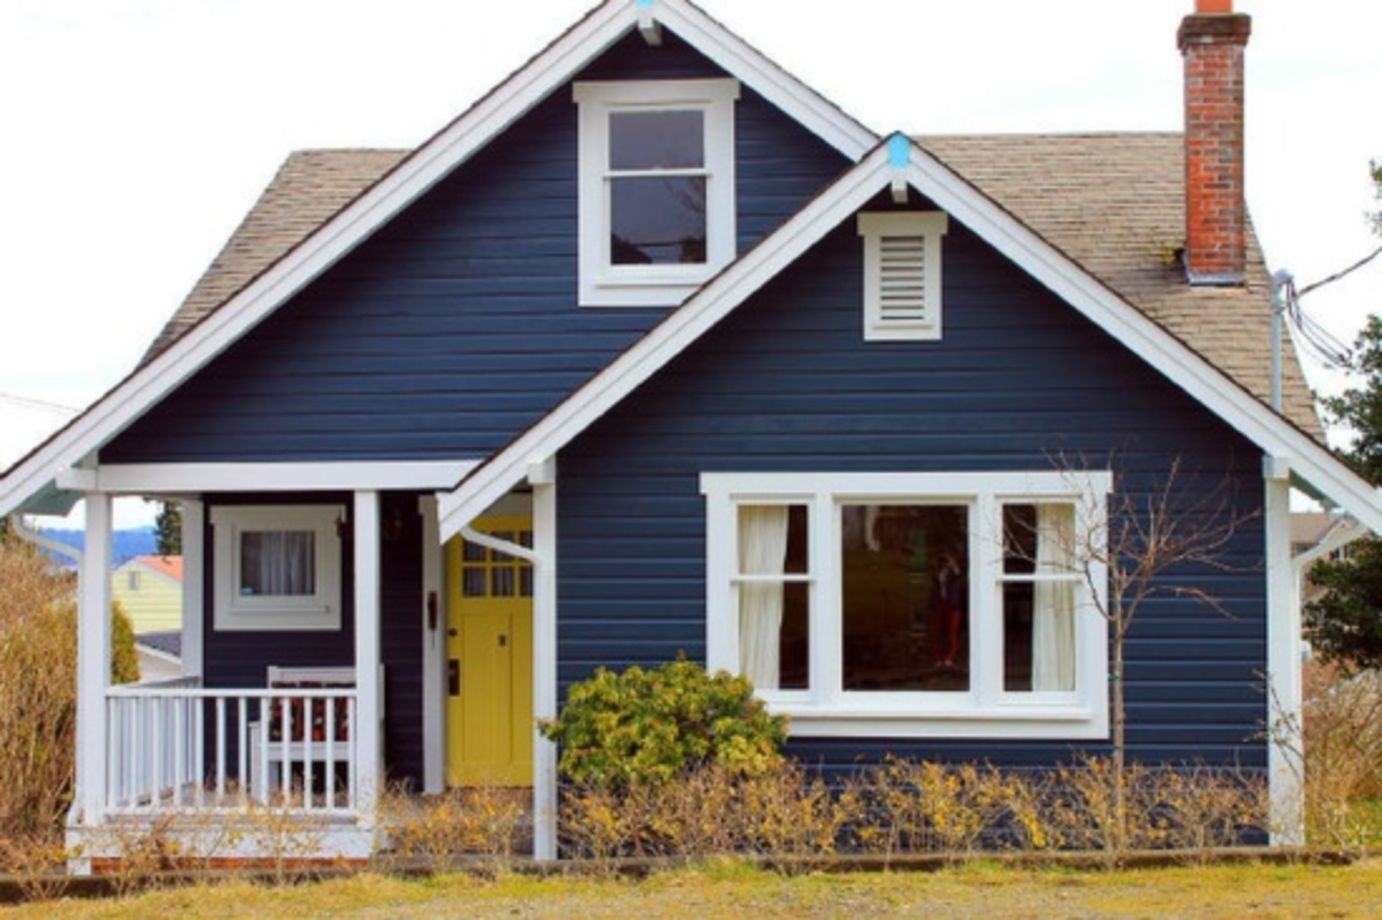 40 Exterior Paint Schemes For Bungalows Roundecor